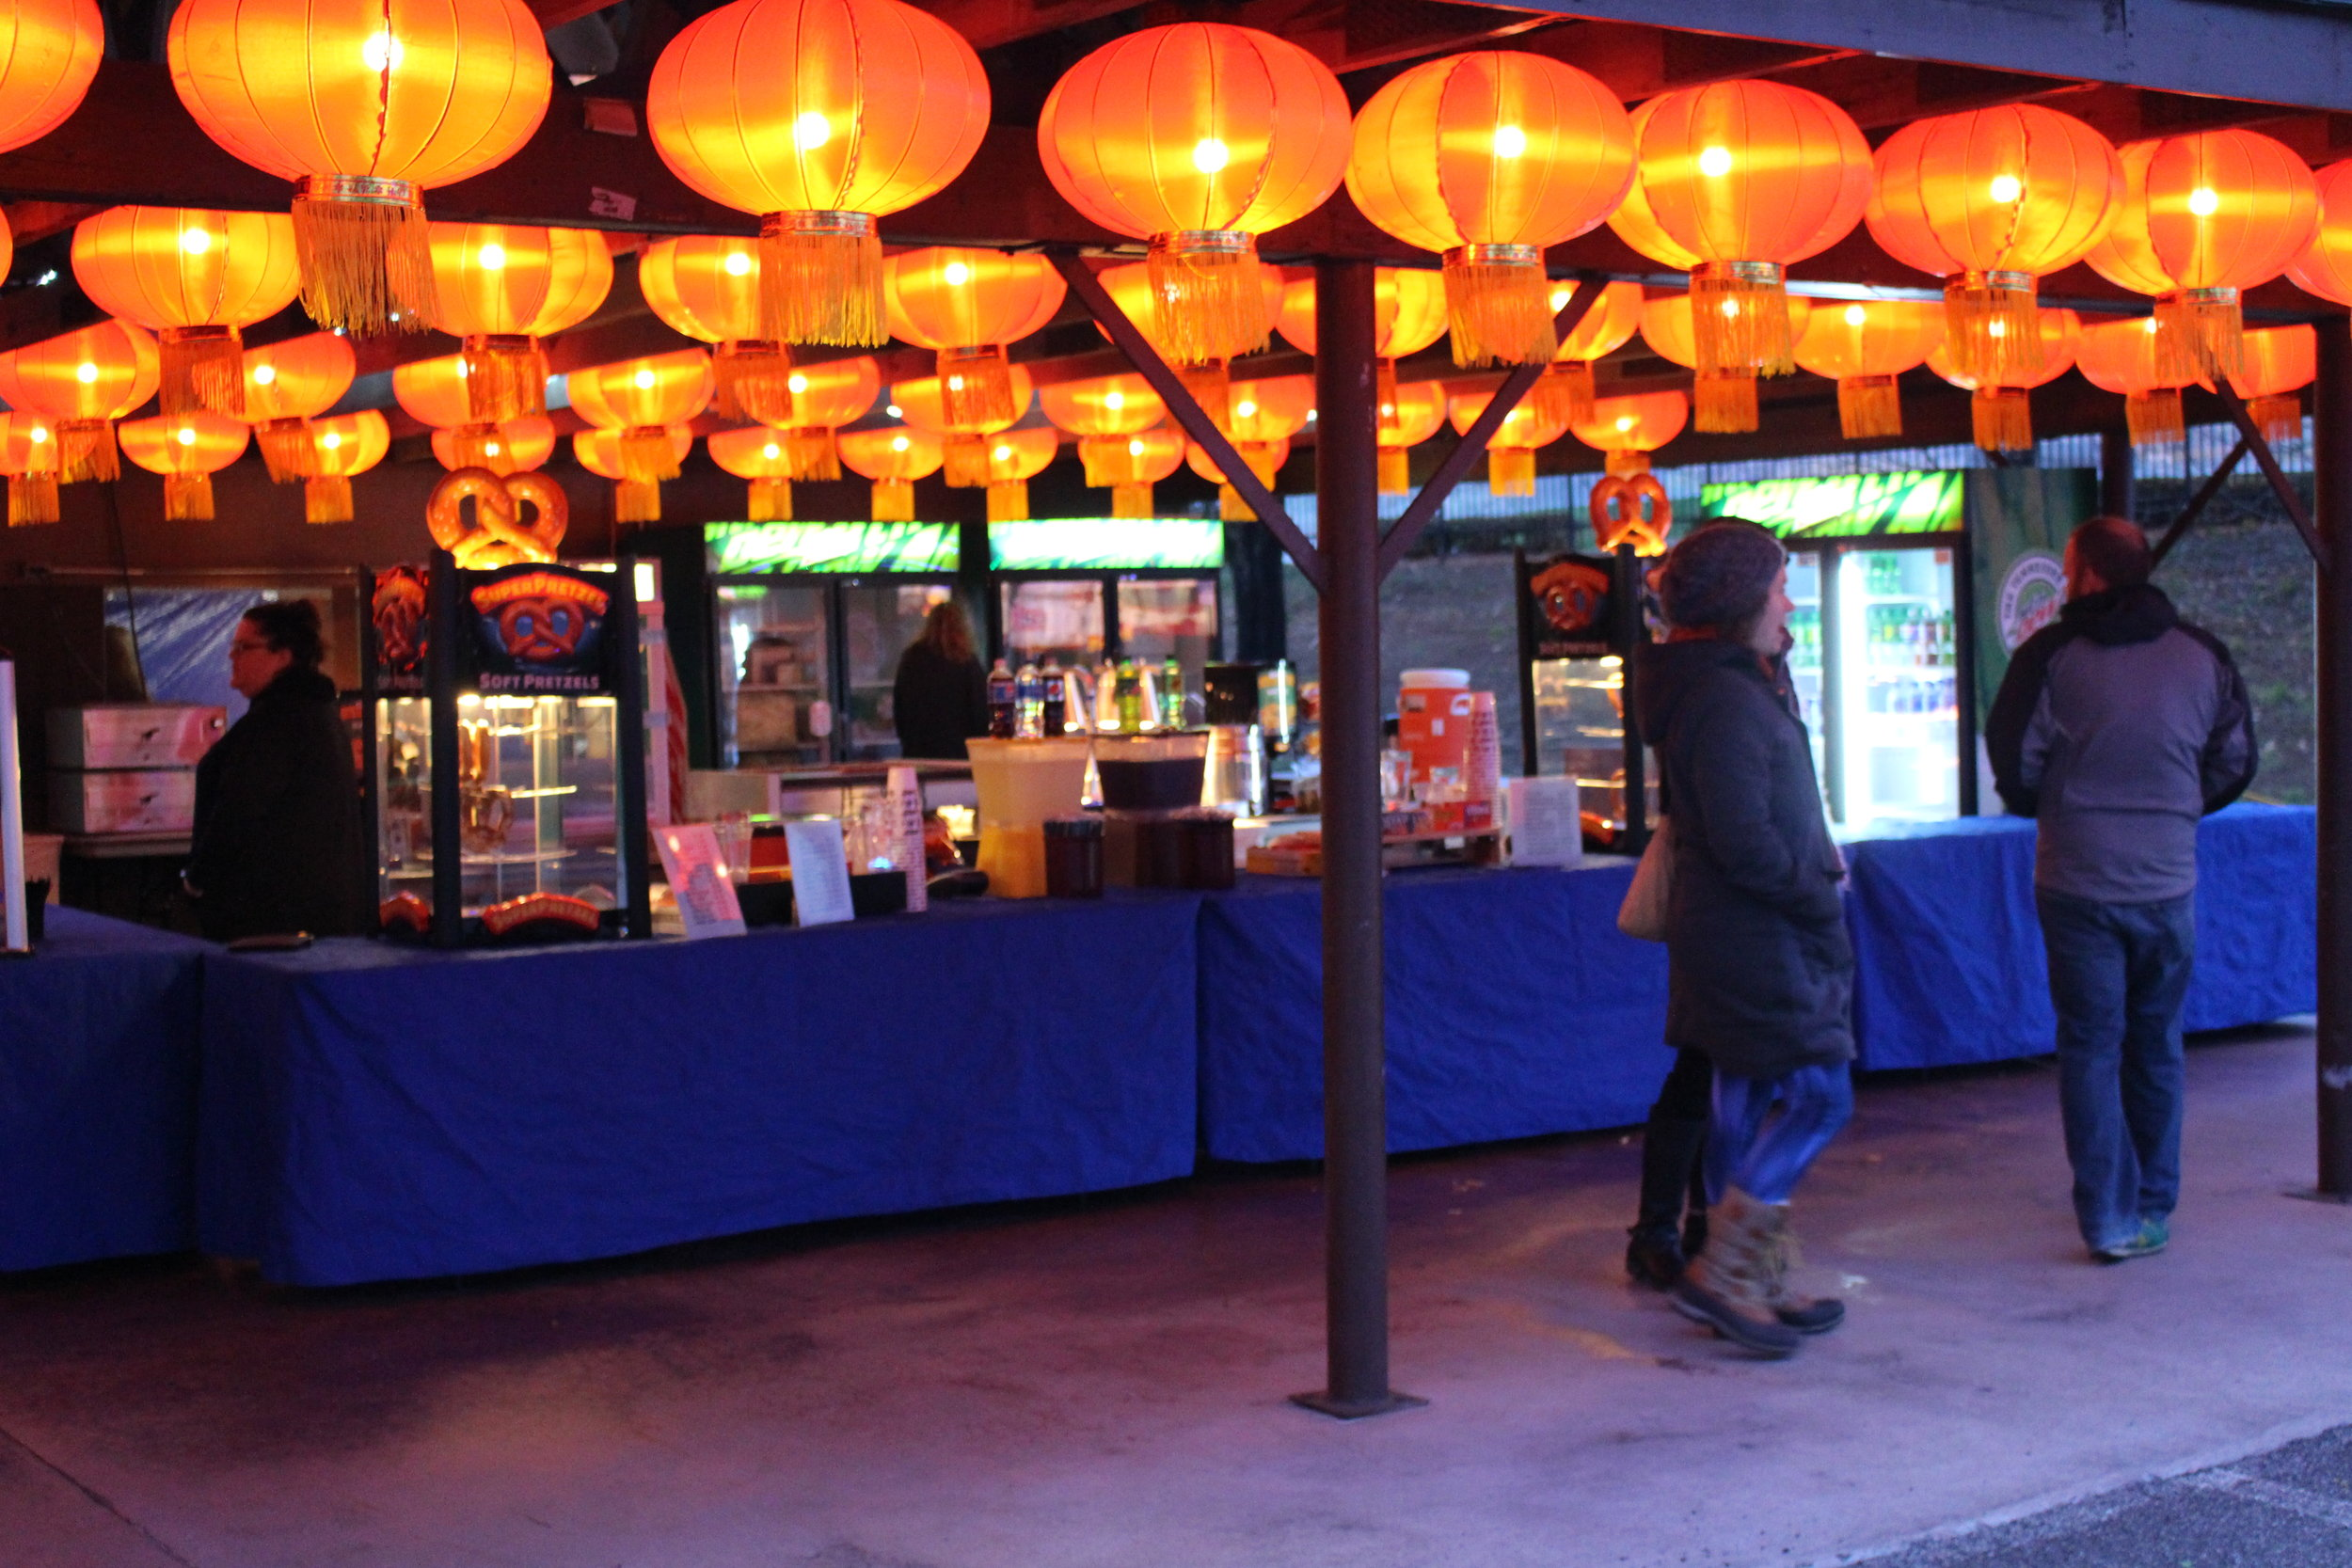 The festival has concessions available inside.